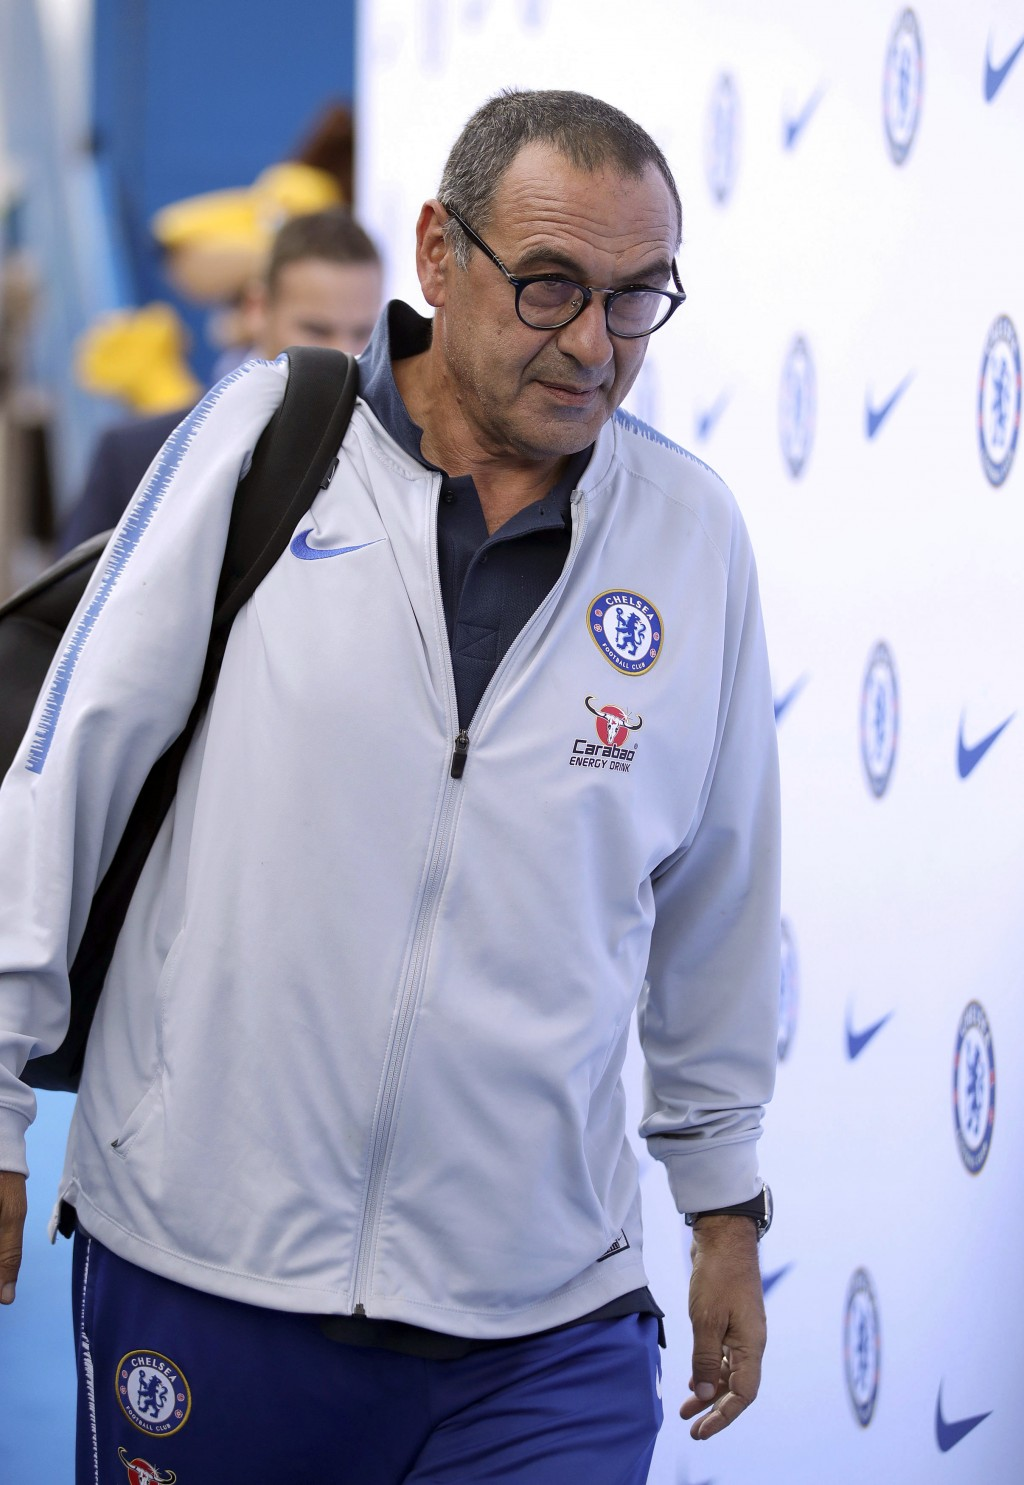 Chelsea manager Maurizio Sarri arrives ahead of a Premier League soccer match between Chelsea and Bounemouth, at Stamford Bridge, London, Saturday, Se...